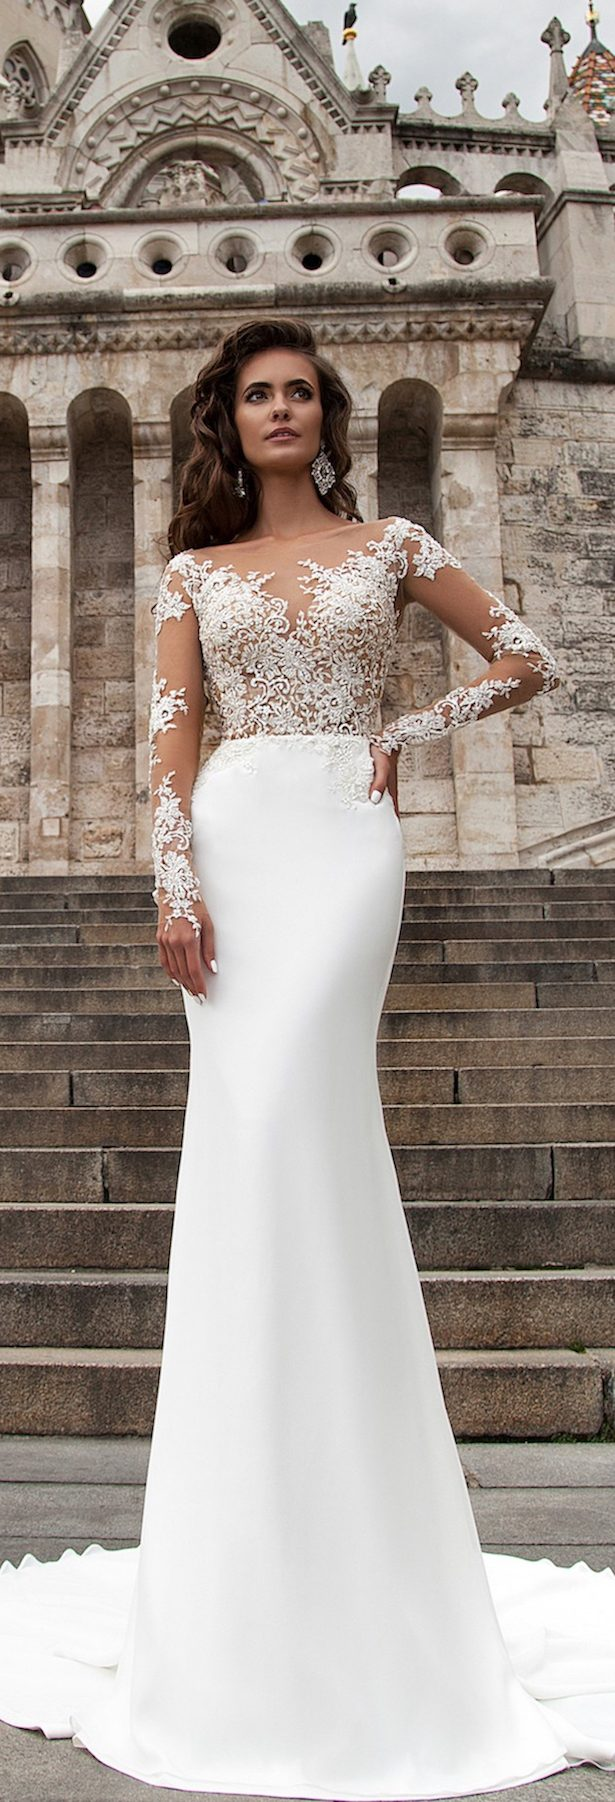 Milla Nova 2016 Bridal Collection - Vanessa